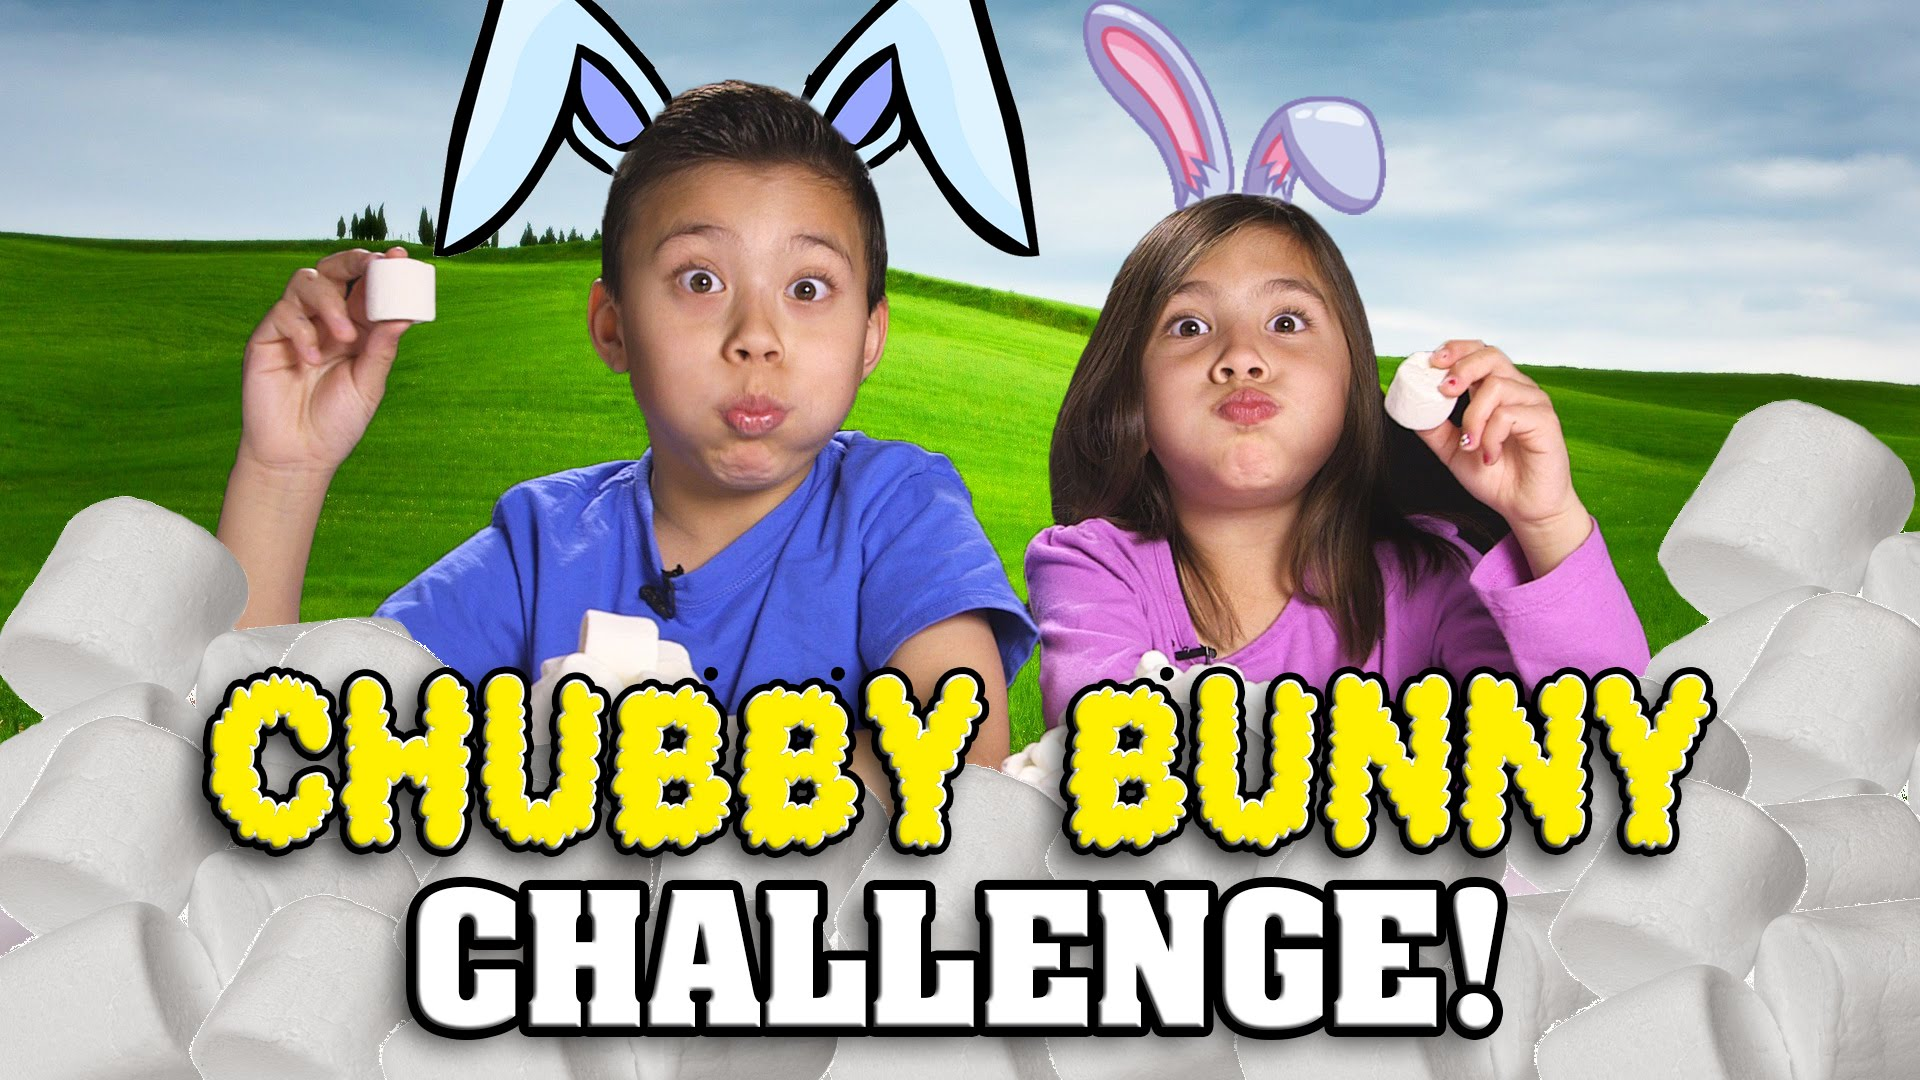 CHUBBY BUNNY CHALLENGE! Marshmallow Stuffing Contest! – Whats That Challenge